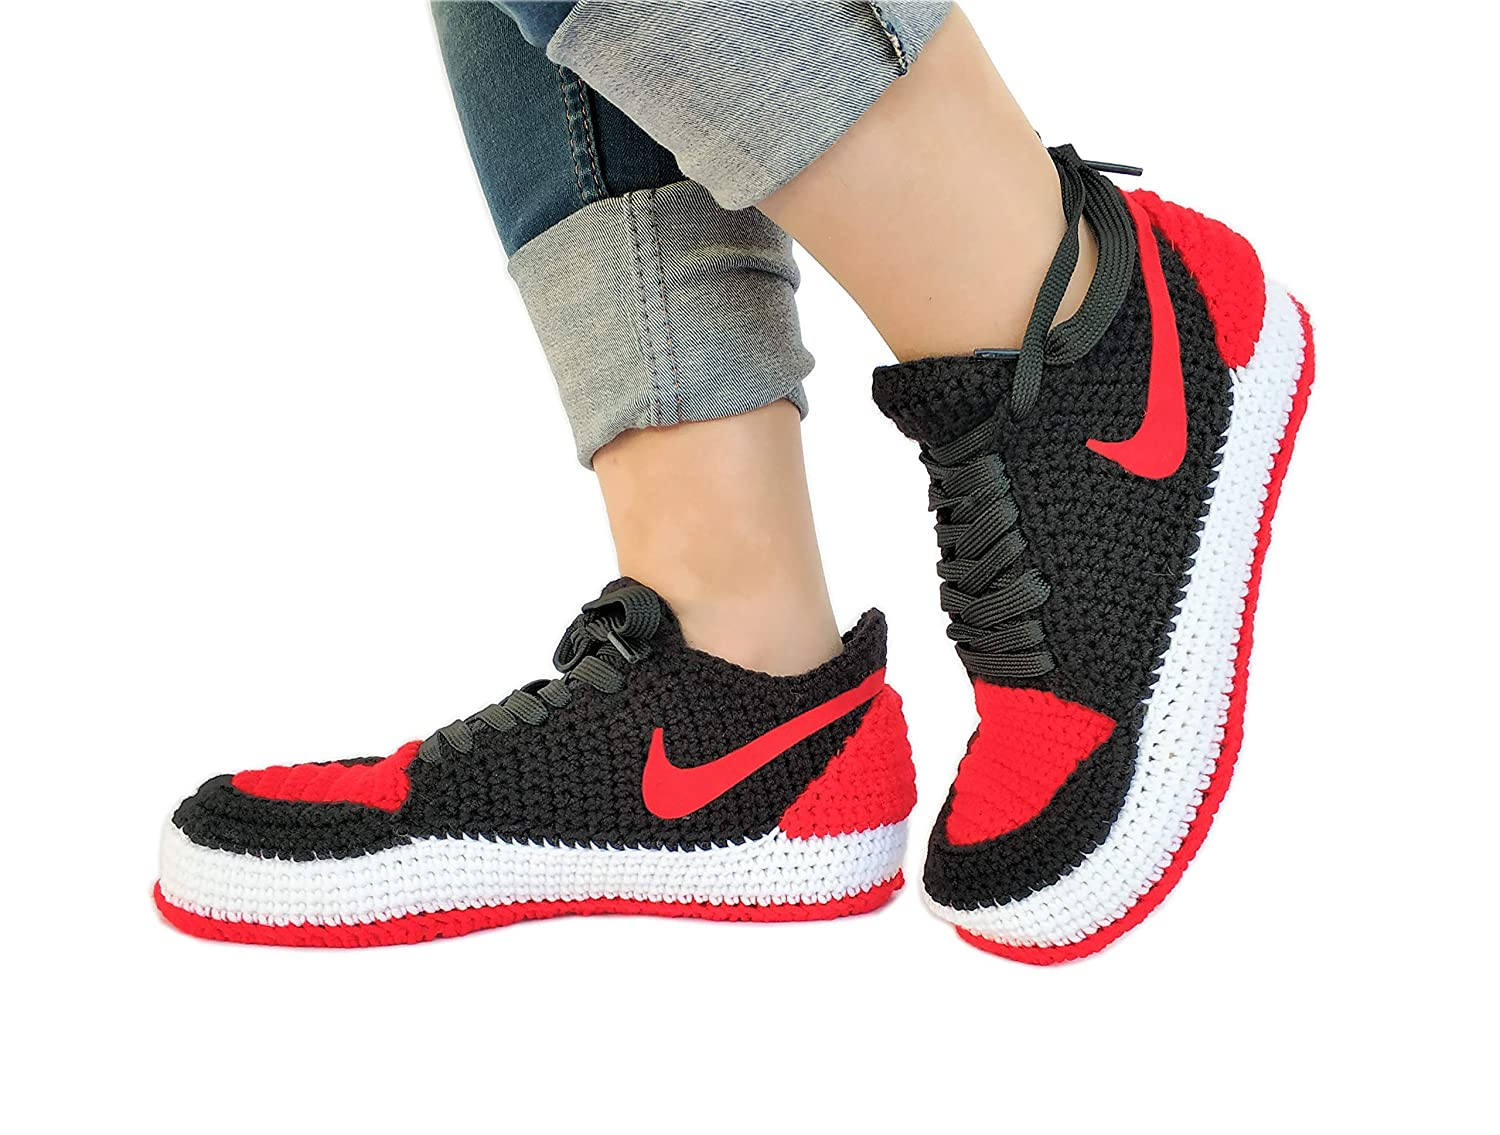 Slippers Sneaker Toe 1 Air Knitting Jordan Basketball Retro Custom Jumpman Flyknit Crochet Bred XiwuZOPkT